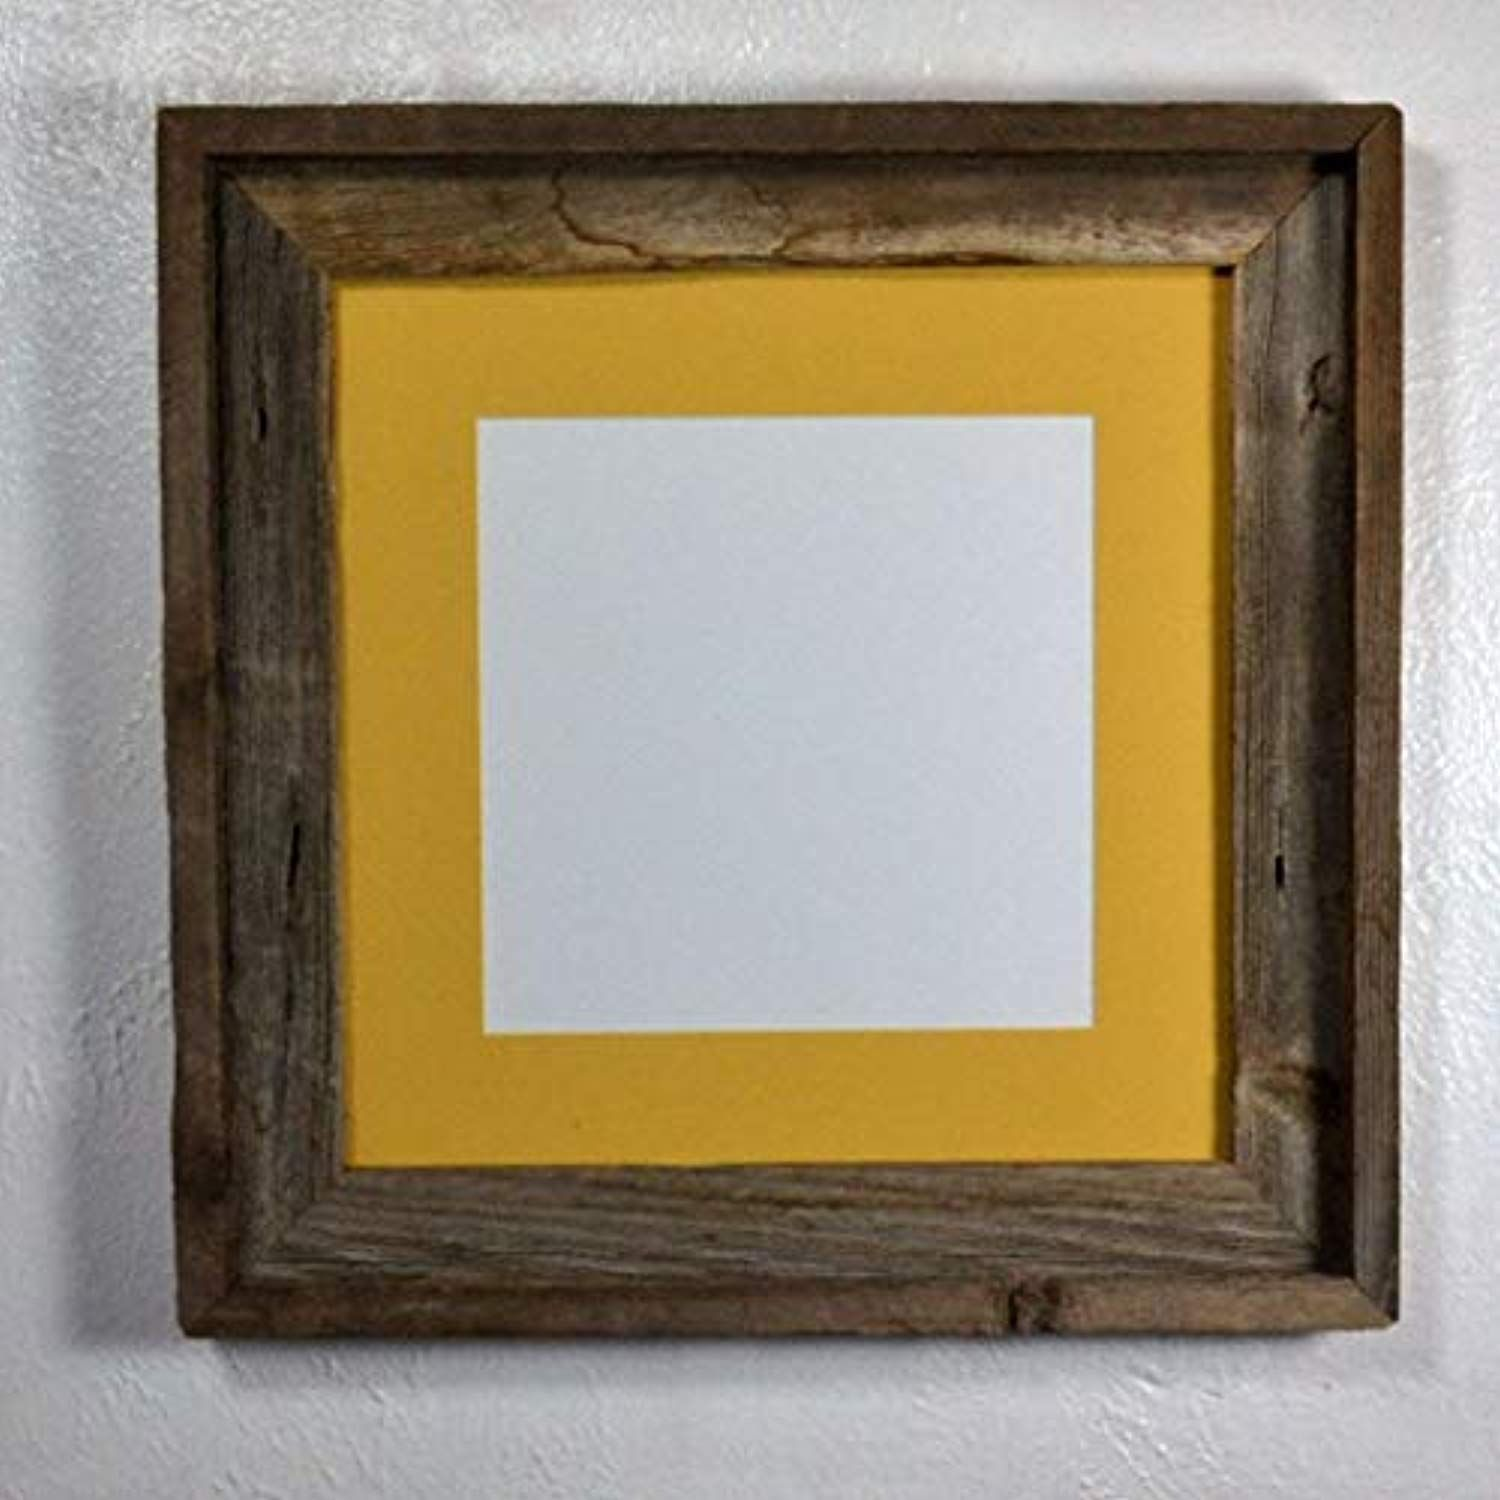 Picture Frame 8x8 Yellow Mat Rustic Reclaimed Wood Complete With Glass 12x12 Without Mat You Can Reclaimed Wood Frames Wood Picture Frames Picture On Wood